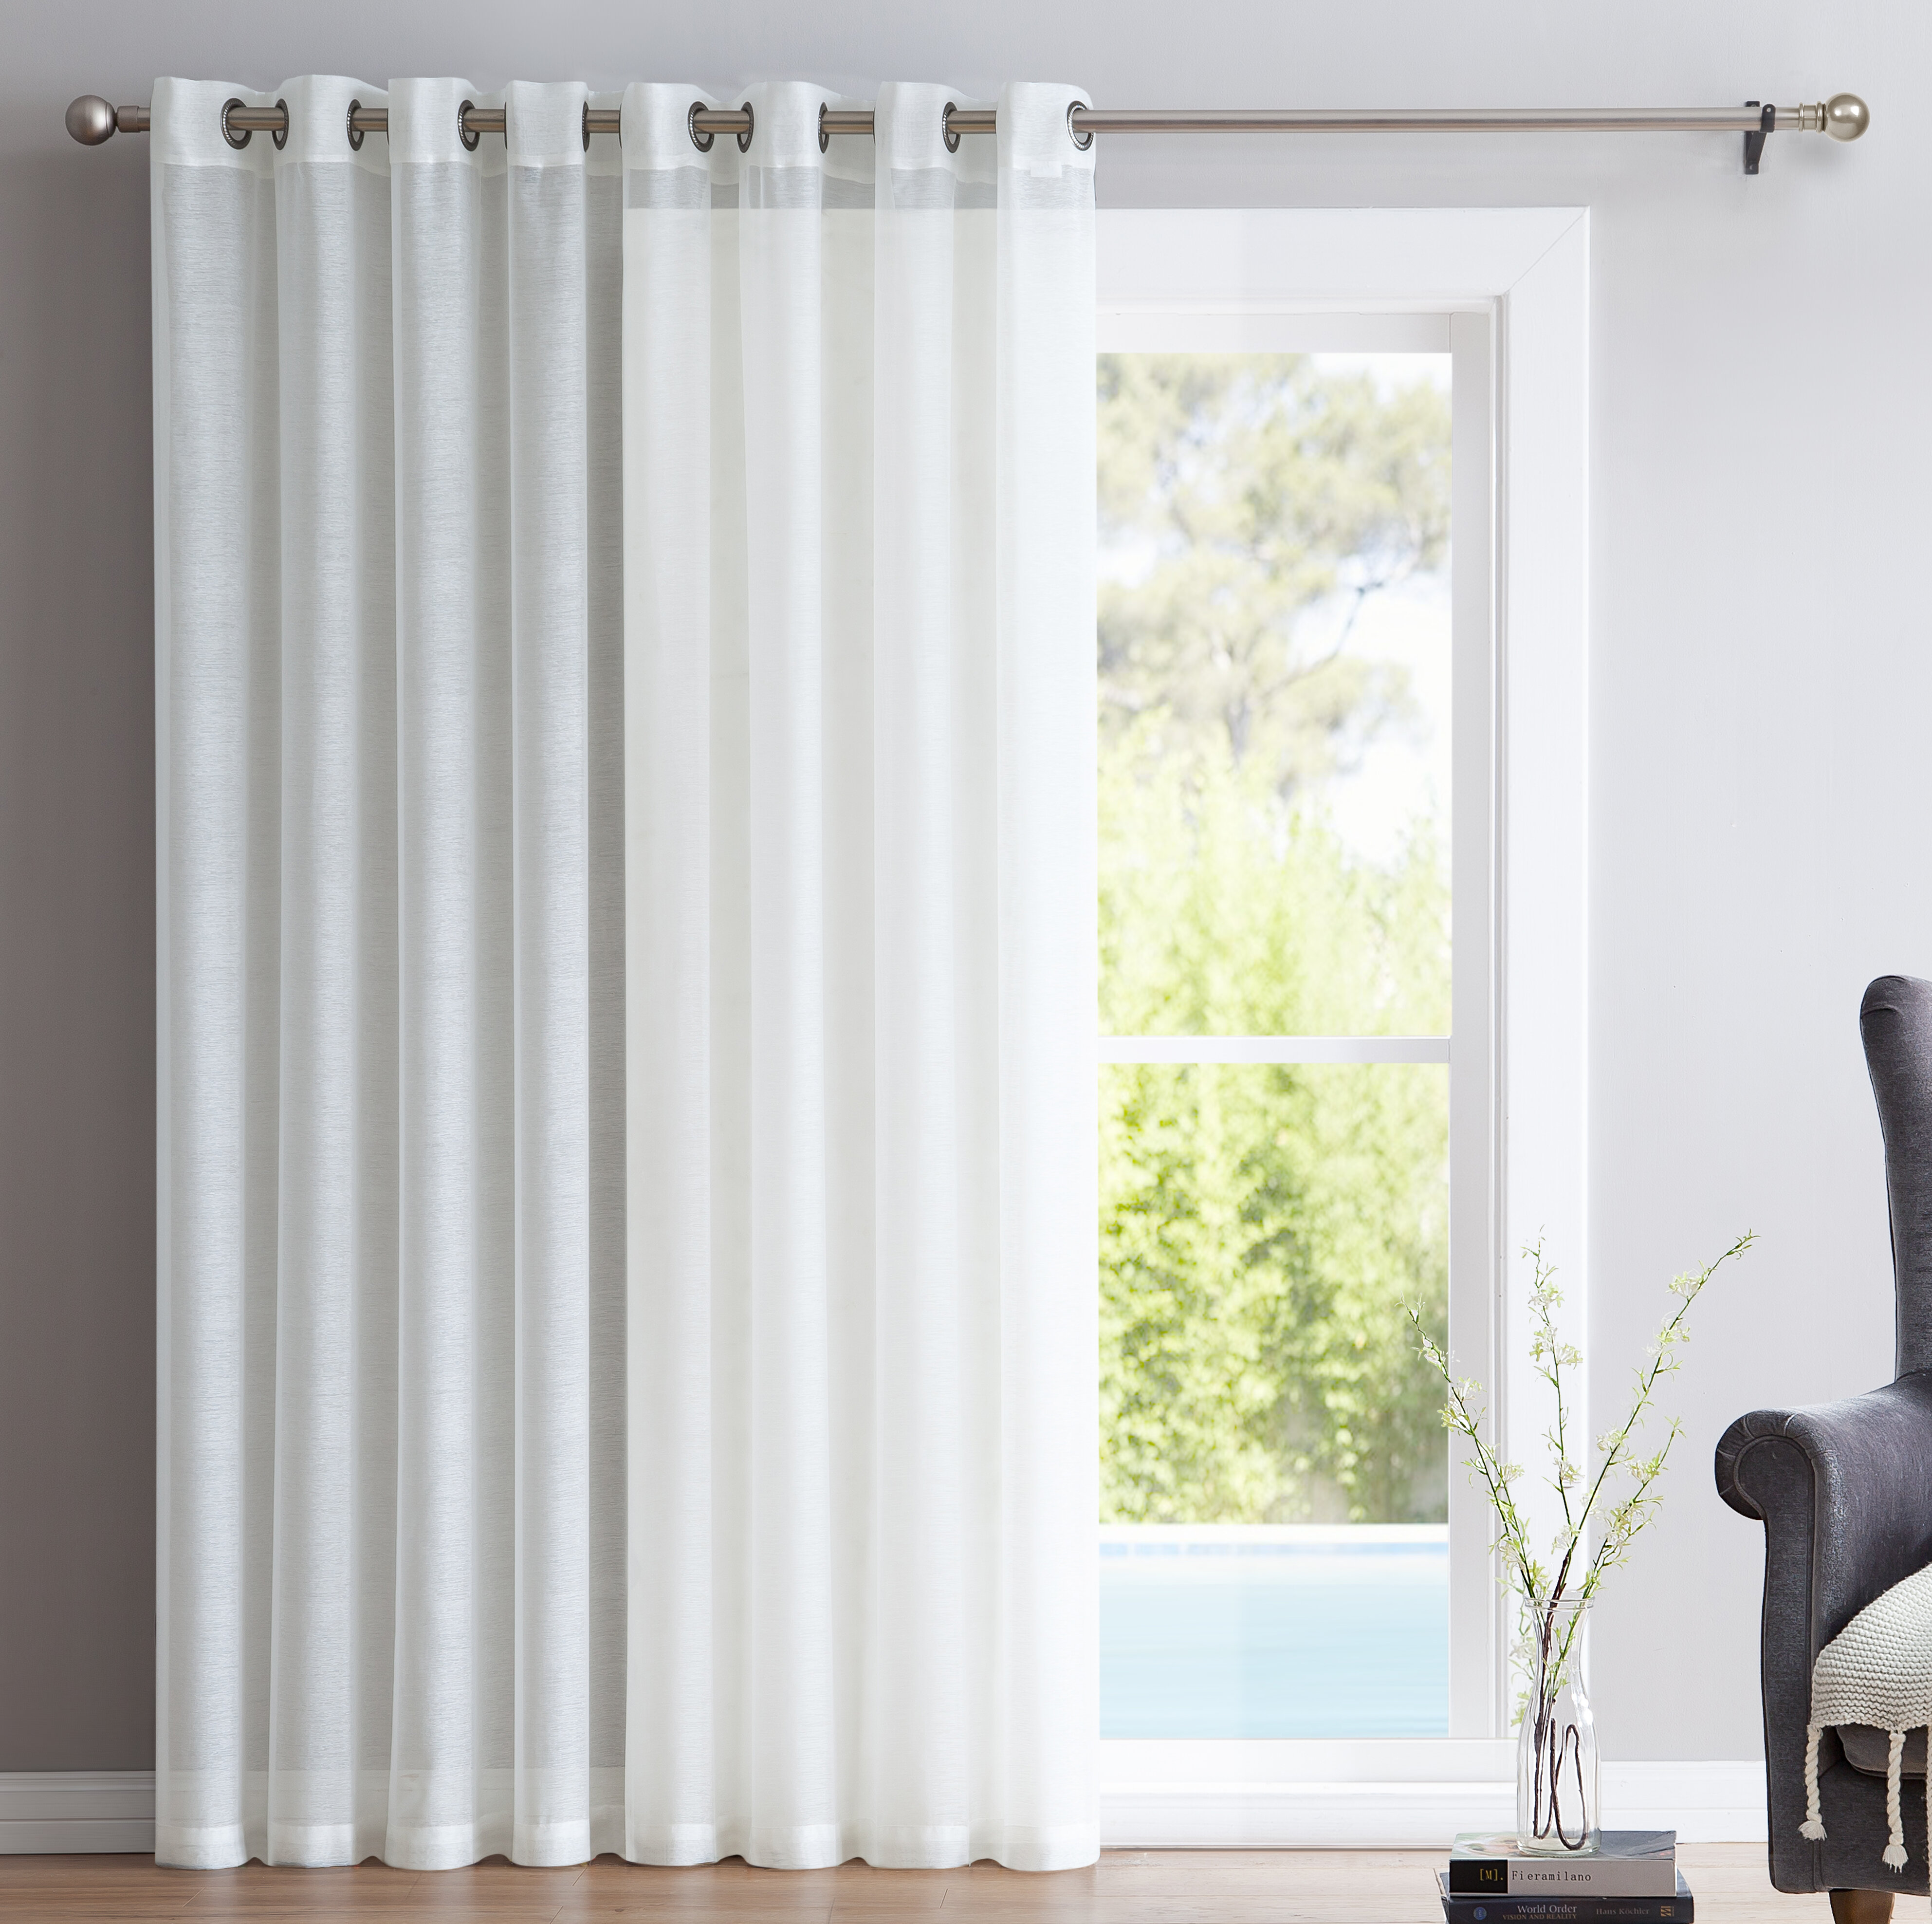 thermal curtain grommet room syl sylvia vcny window cropped panel blackout medallion set darkening ppr curtains sx grey